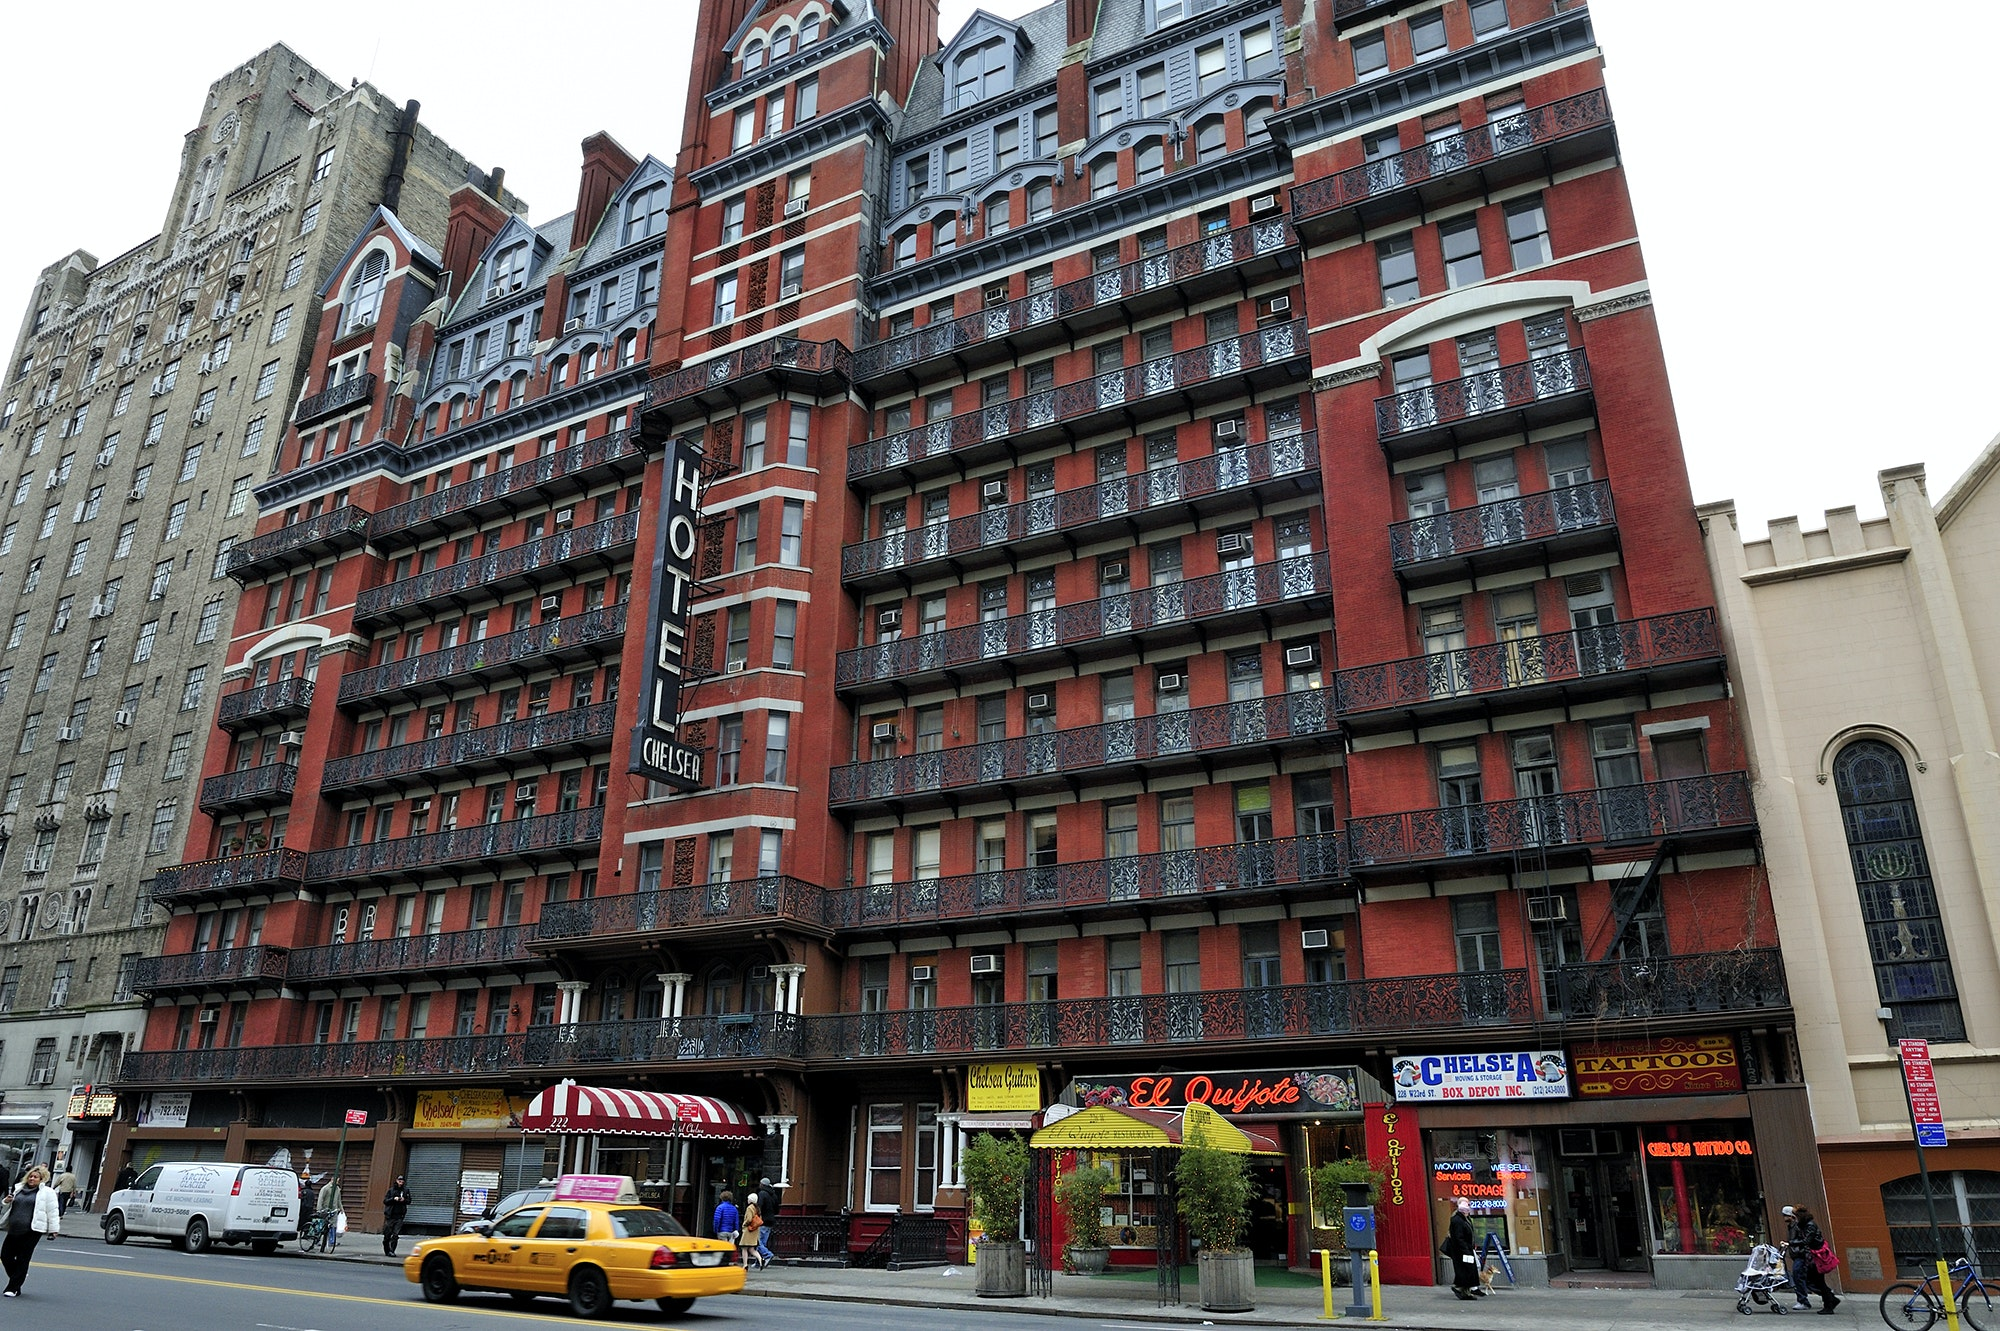 New York City's Chelsea Hotel sits at 222 West 23rd Street in Manhattan.